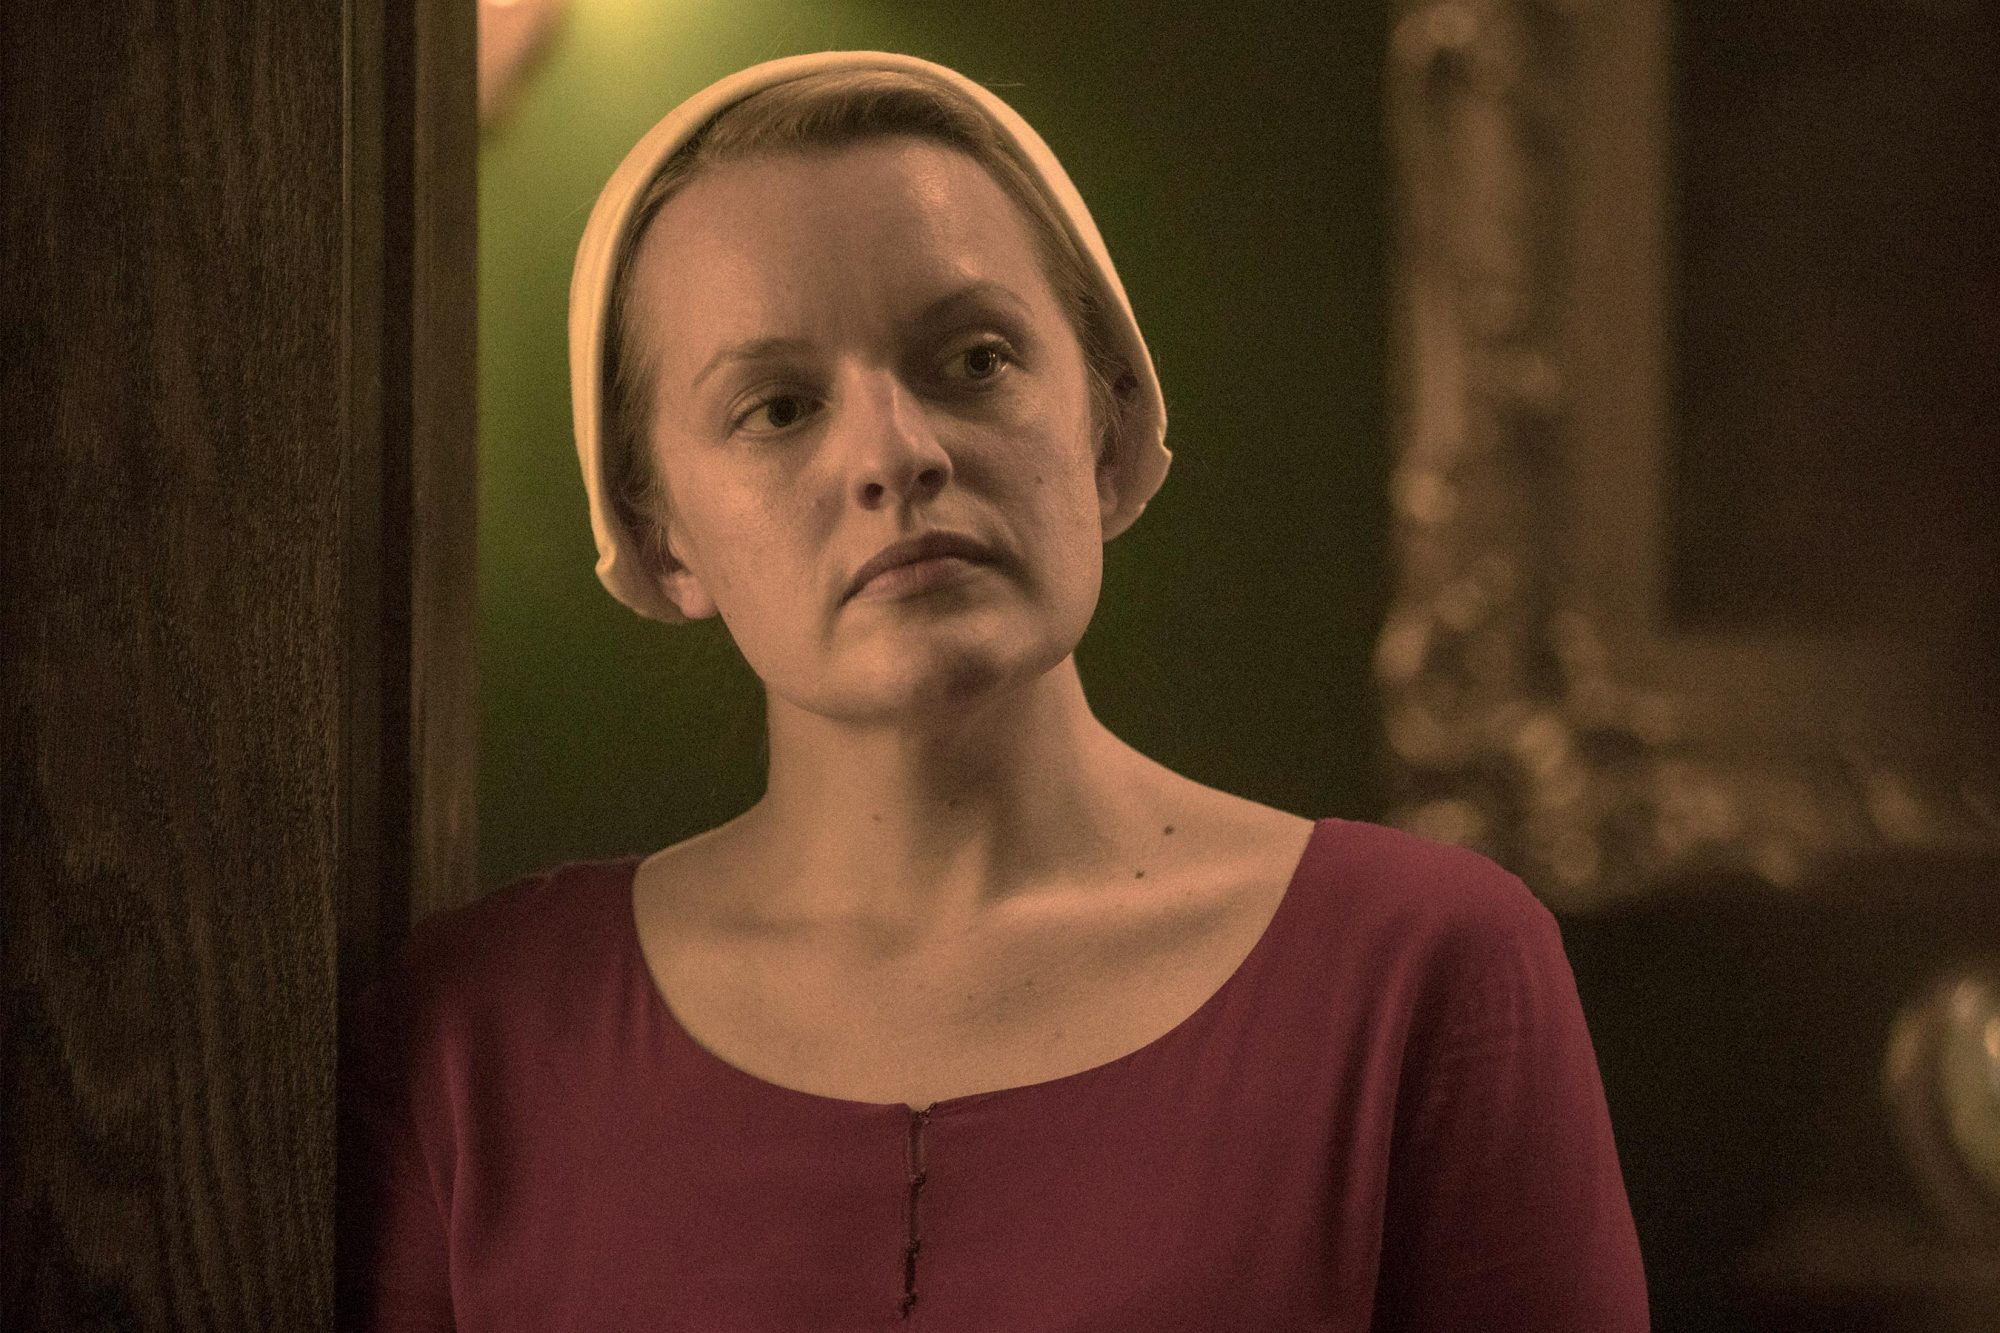 """The Handmaid's Tale -- """"Unfit"""" - Episode 308 -- June and the rest of the Handmaids shun Ofmatthew, and both are pushed to their limit at the hands of Aunt Lydia. Aunt Lydia reflects on her life and relationships before the rise of Gilead. June (Elisabeth Moss), shown. (Photo by: Jasper Savage/Hulu)"""